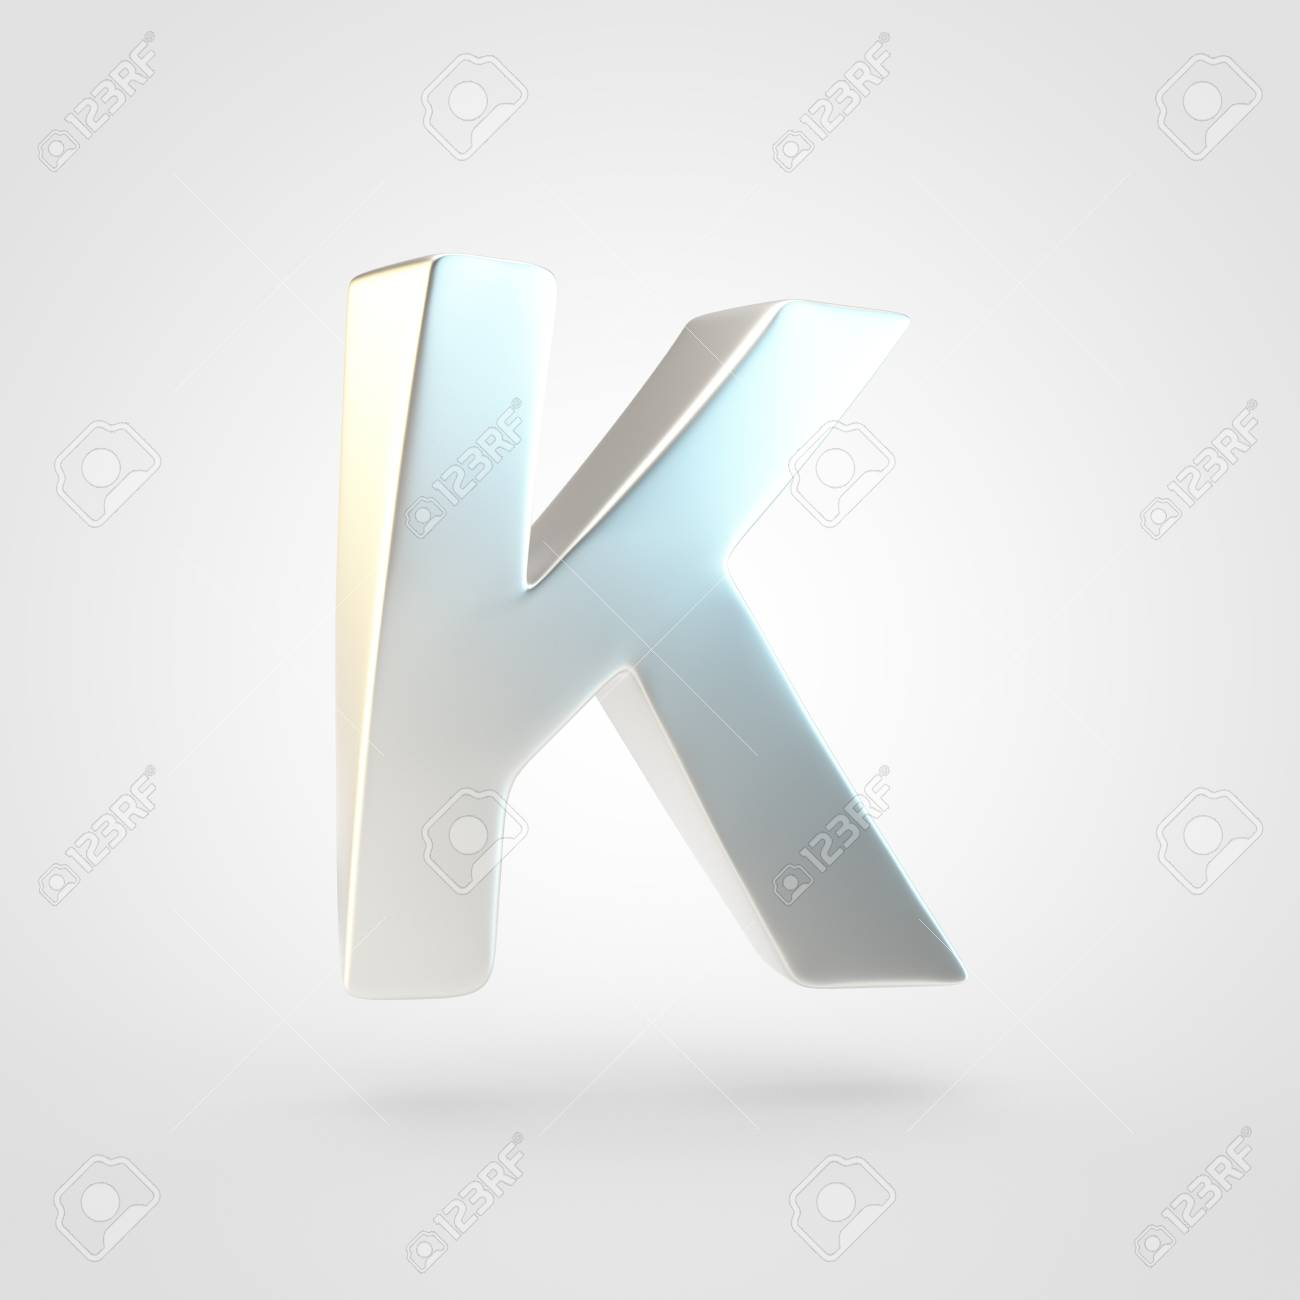 Silver Letter K Uppercase 3D Rendering Of Matted Silver Font 1300x1300